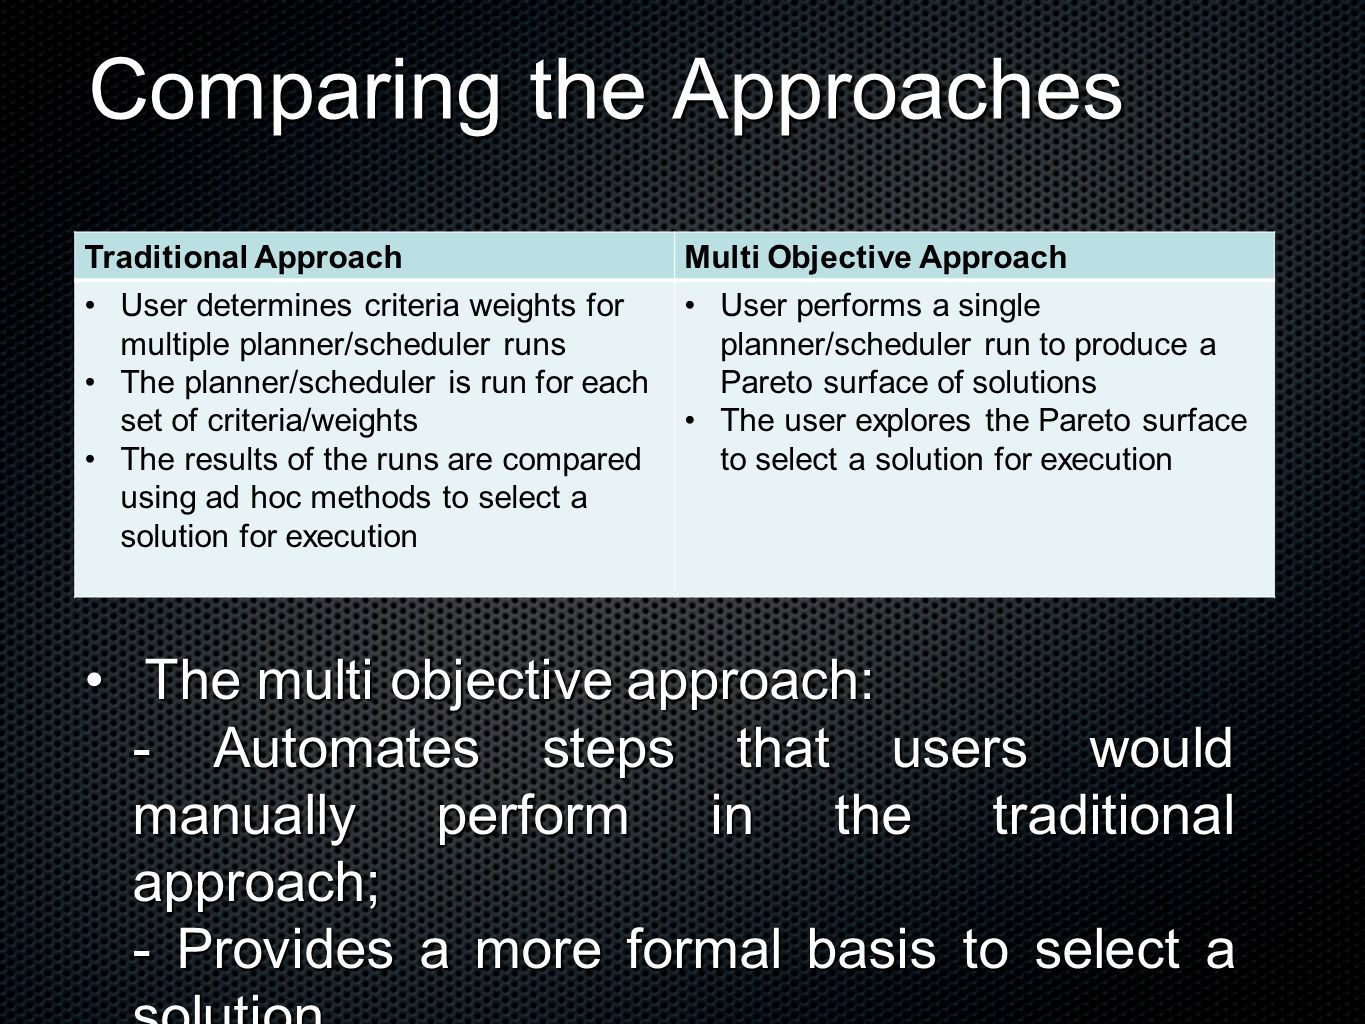 Comparing the Approaches Traditional ApproachMulti Objective Approach User determines criteria weights for multiple planner/scheduler runs The planner/scheduler is run for each set of criteria/weights The results of the runs are compared using ad hoc methods to select a solution for execution User performs a single planner/scheduler run to produce a Pareto surface of solutions The user explores the Pareto surface to select a solution for execution The multi objective approach:The multi objective approach: - Automates steps that users would manually perform in the traditional approach; - Provides a more formal basis to select a solution.